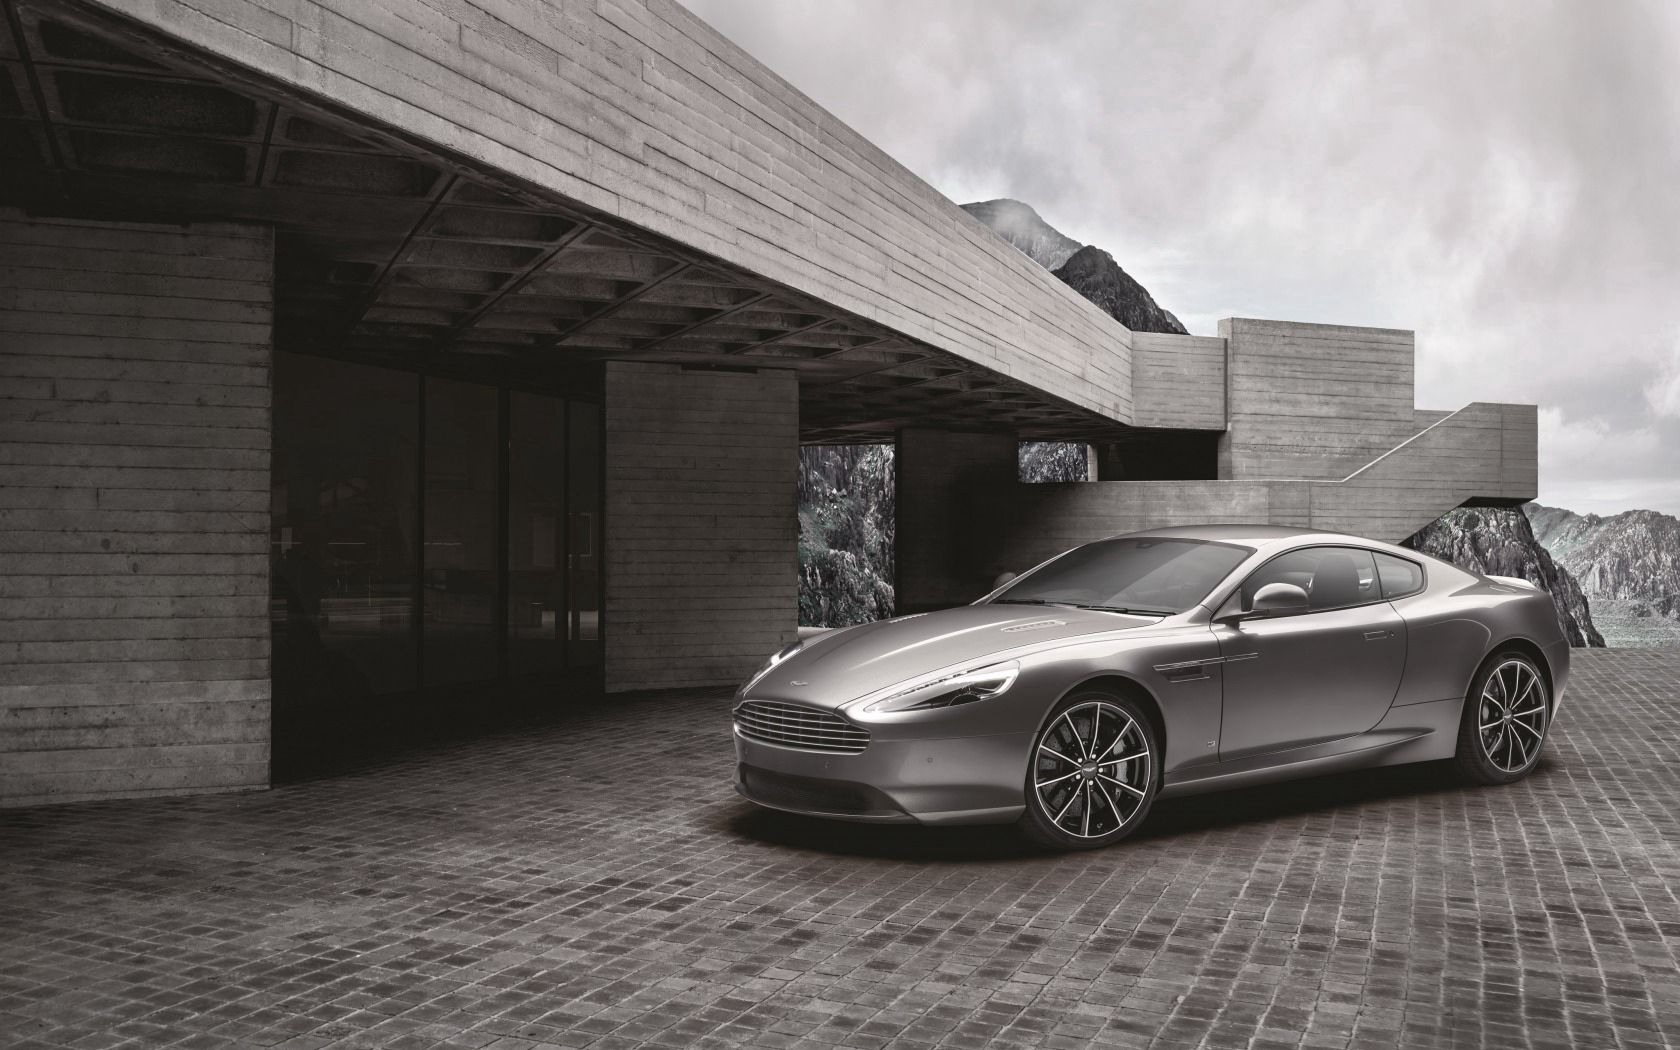 78743 download wallpaper Aston Martin, Cars, Grey, Side View, Gt, Db9 screensavers and pictures for free